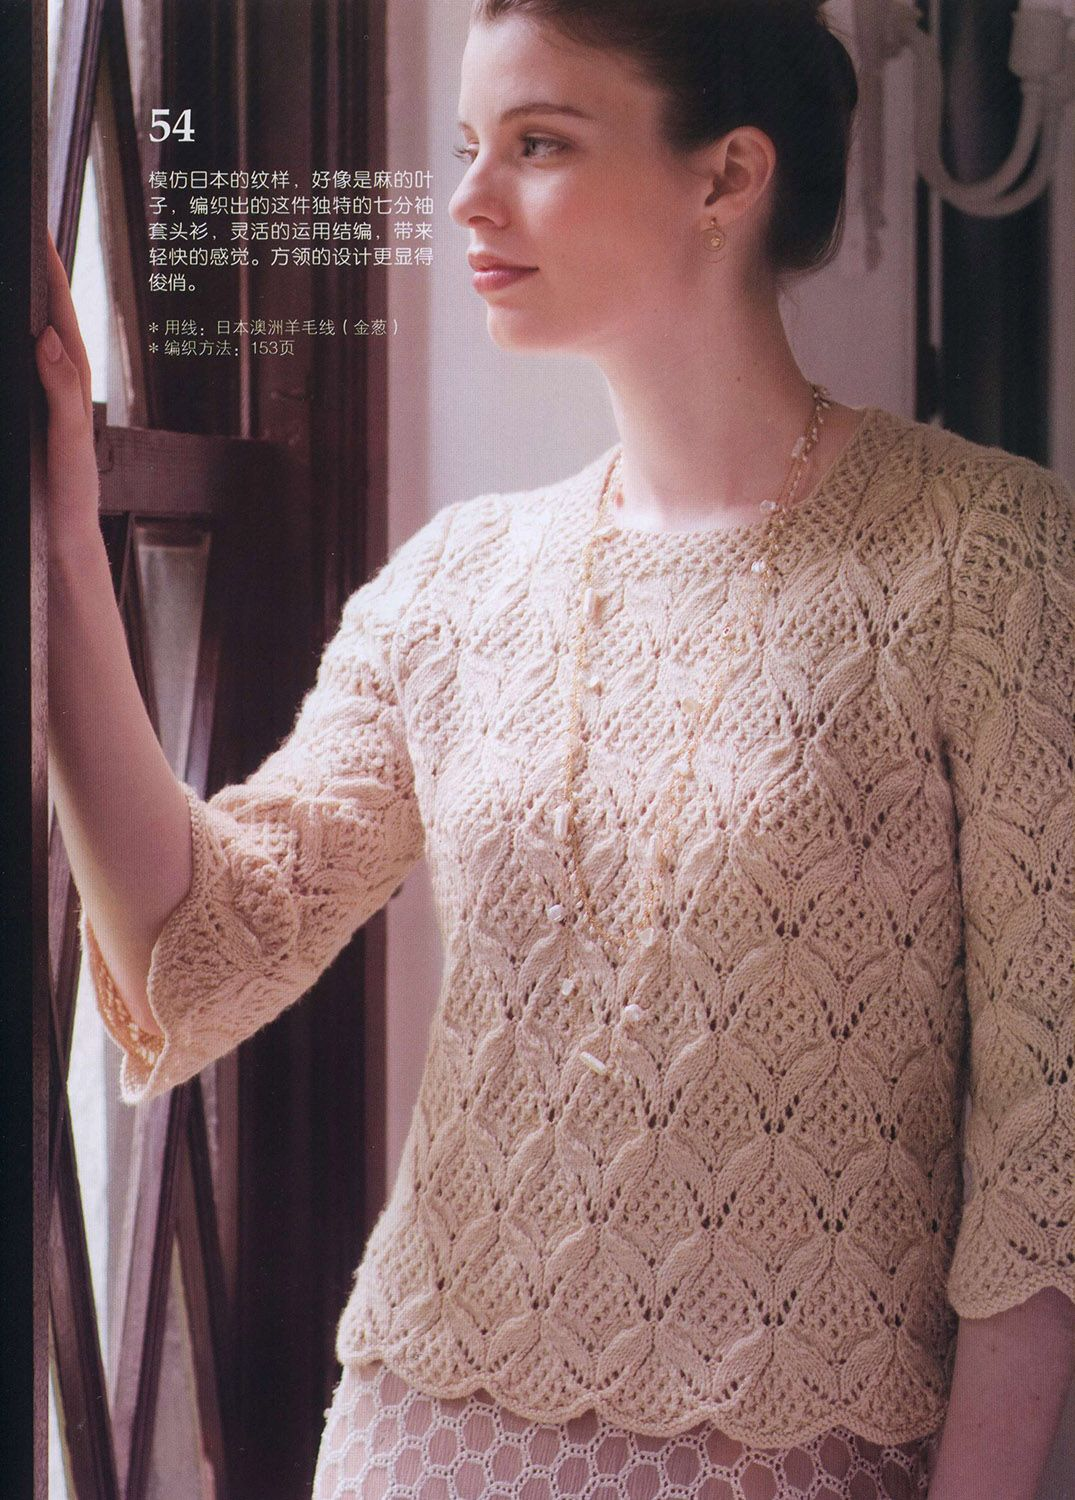 Pullover #54, Haute Couture Knitwear (Japanese knitting pattern ...